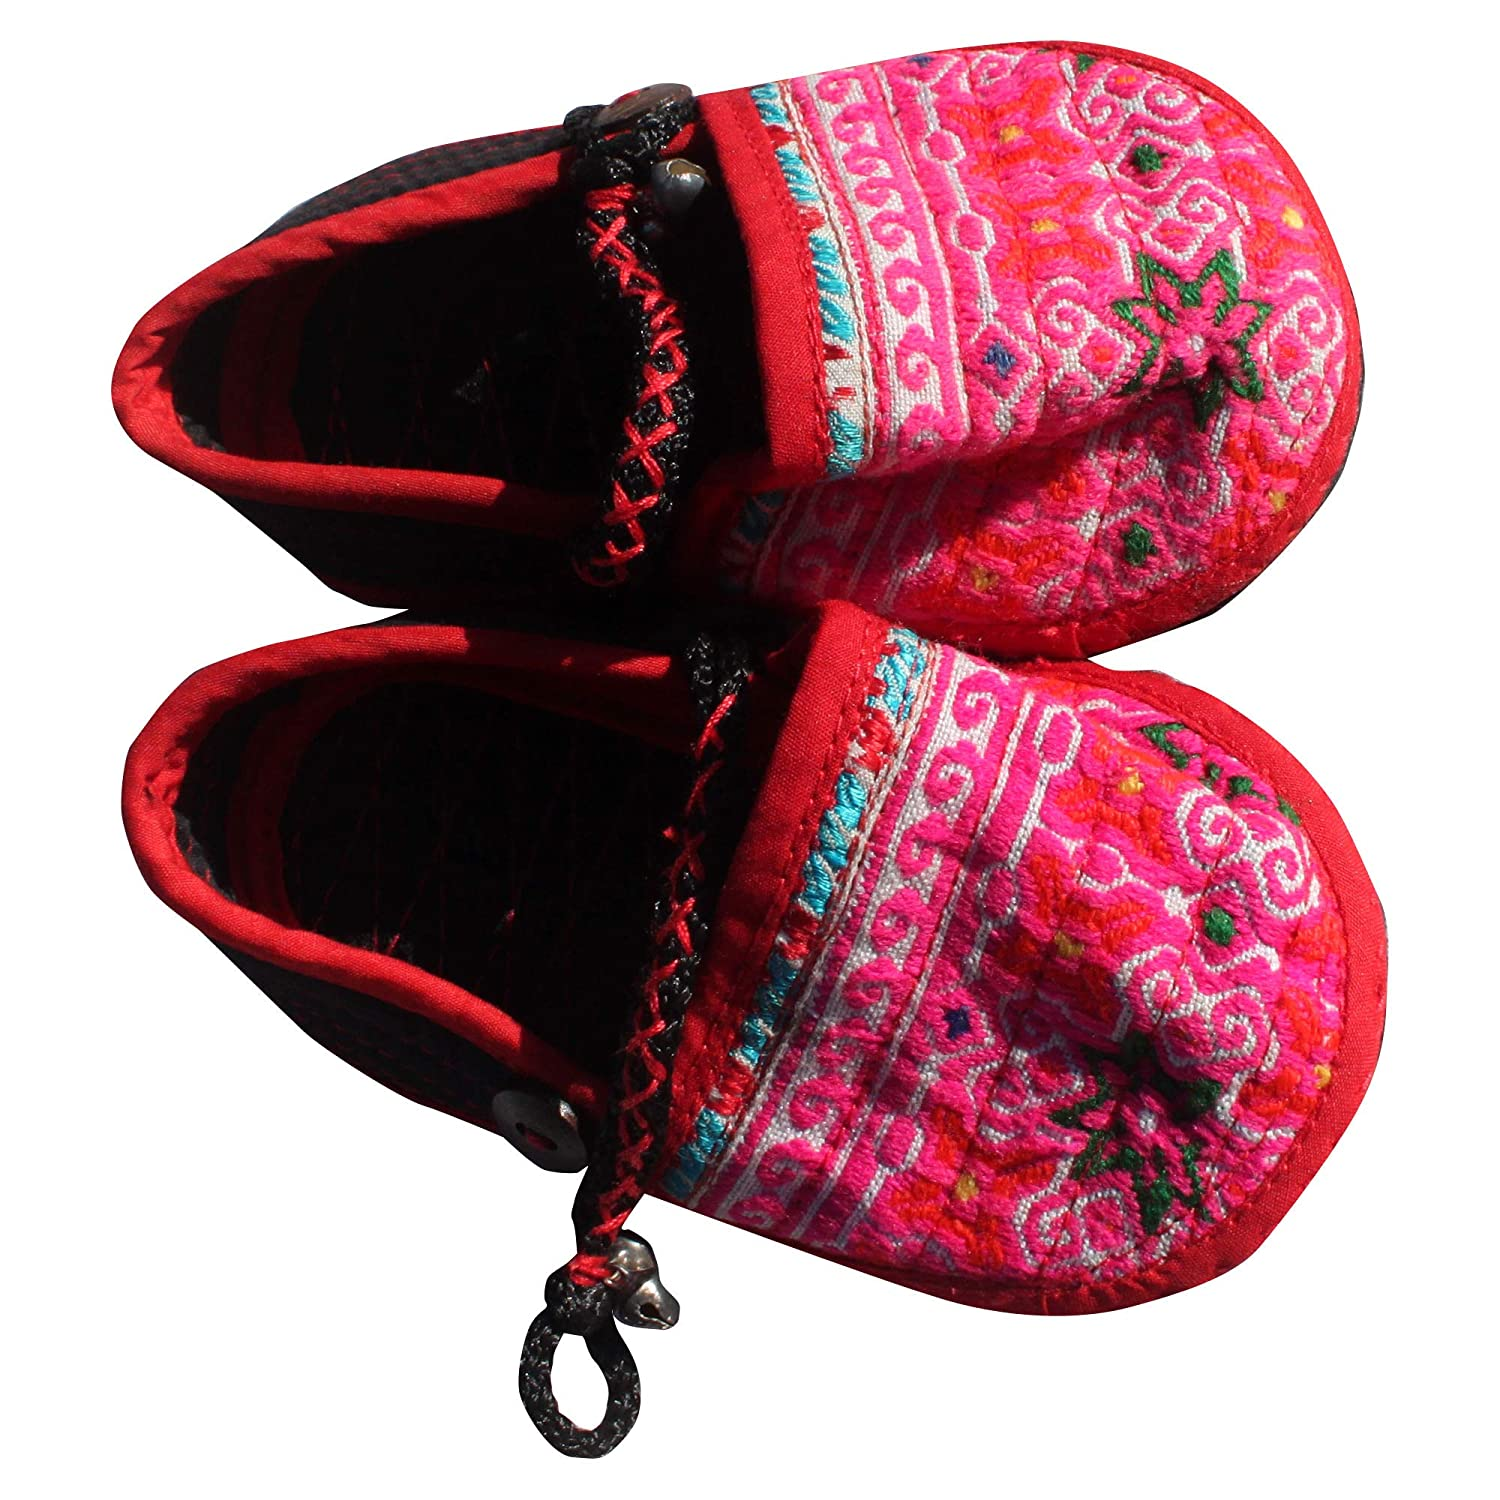 Full Funk Little Thai Hmong HillTribe Babies Baby Infant Hand Stitched Shoes